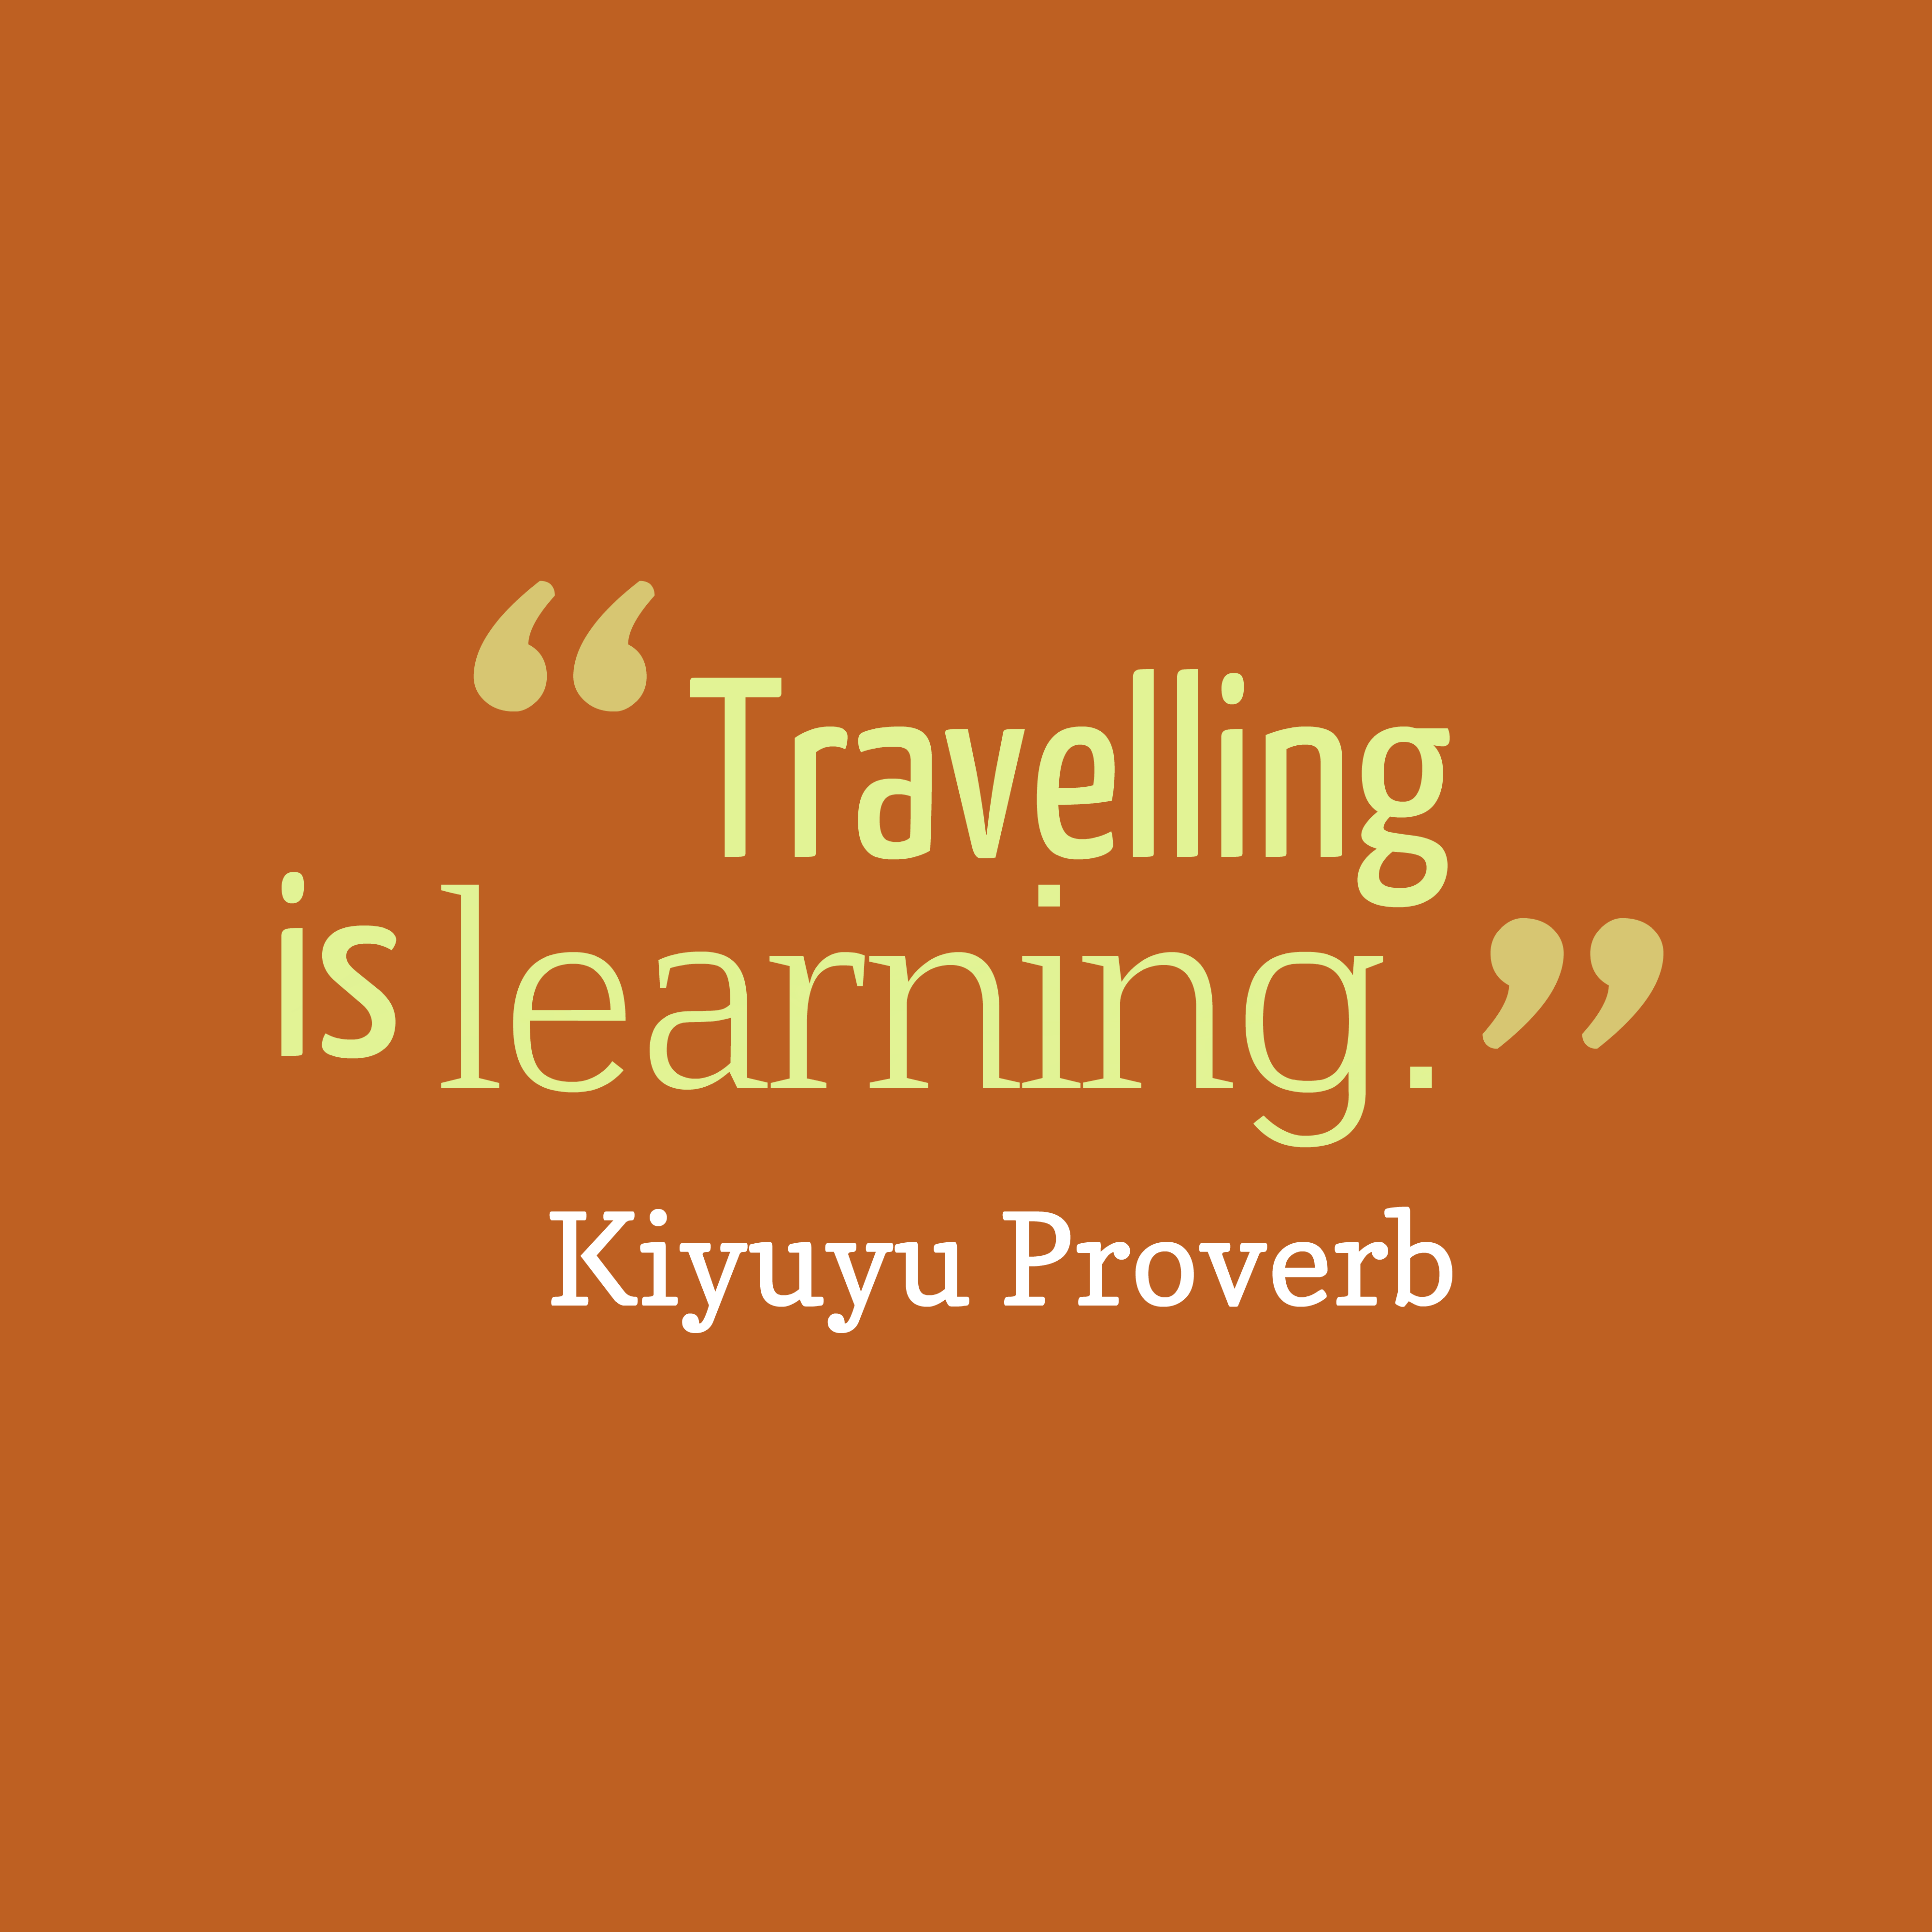 Quotes image of Travelling is learning.